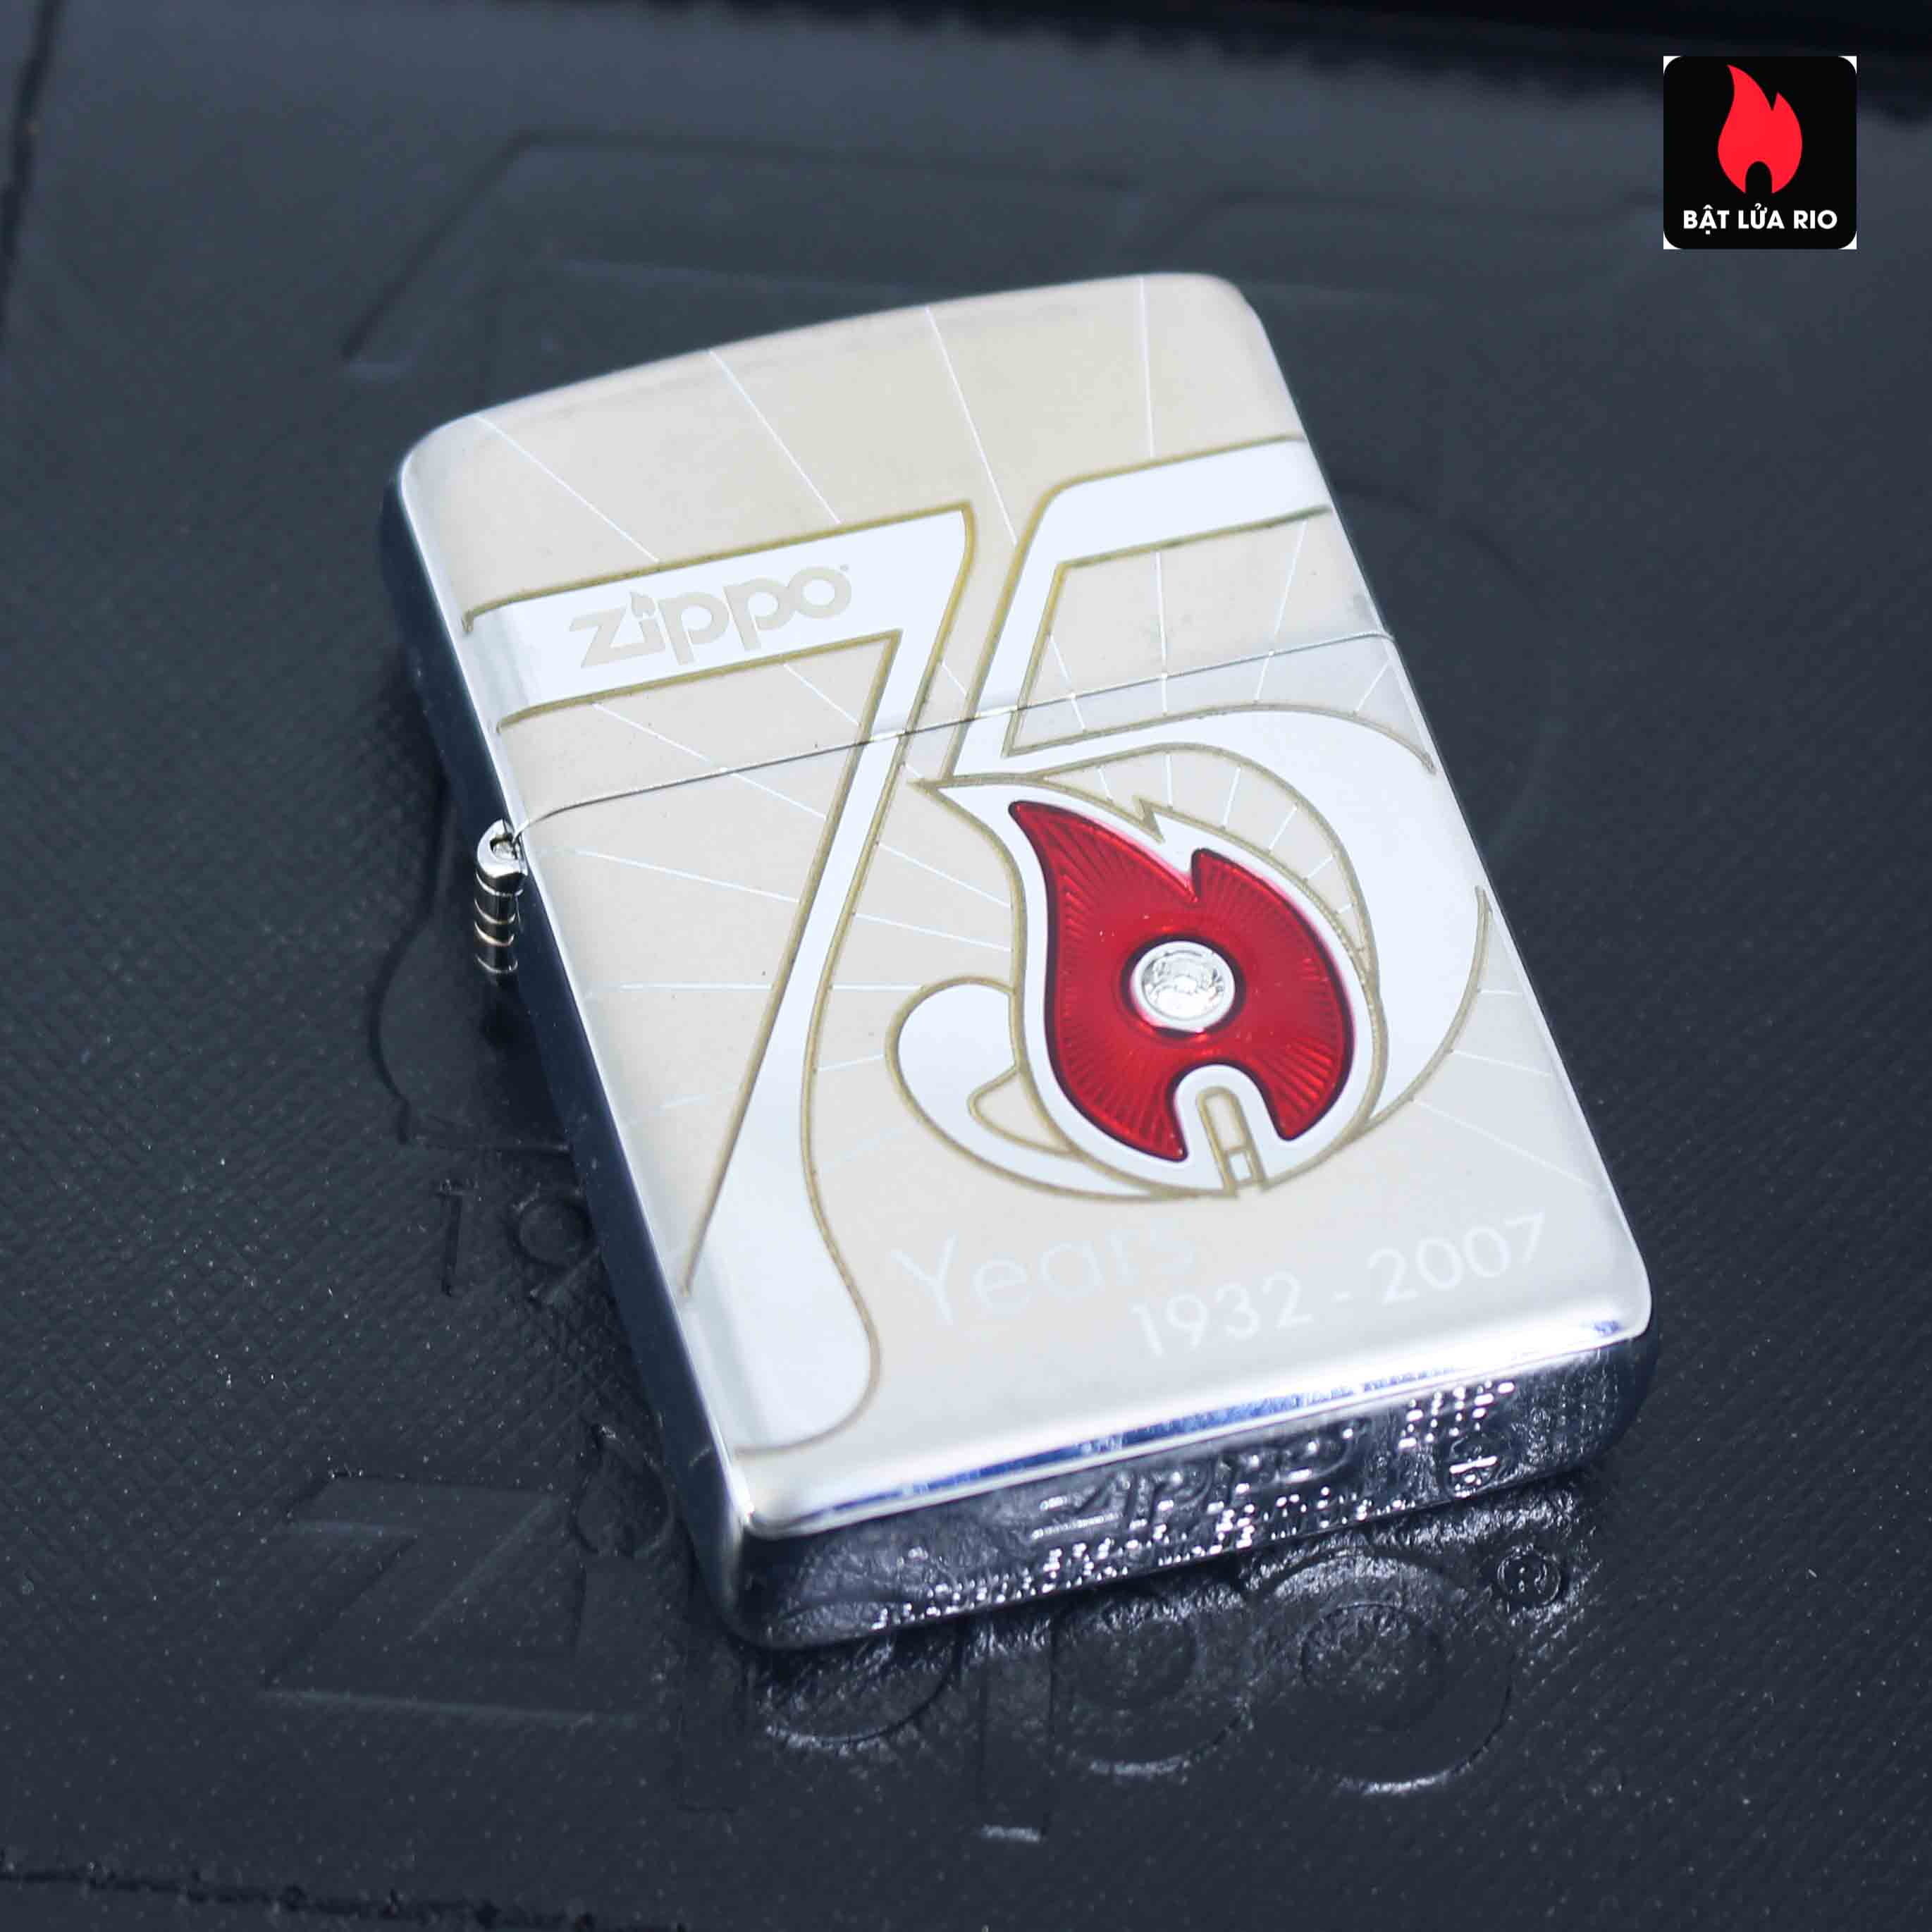 Zippo 2007 - 75th Anniversary Edition - VietNam - Limited VIE 1 Of 500 10